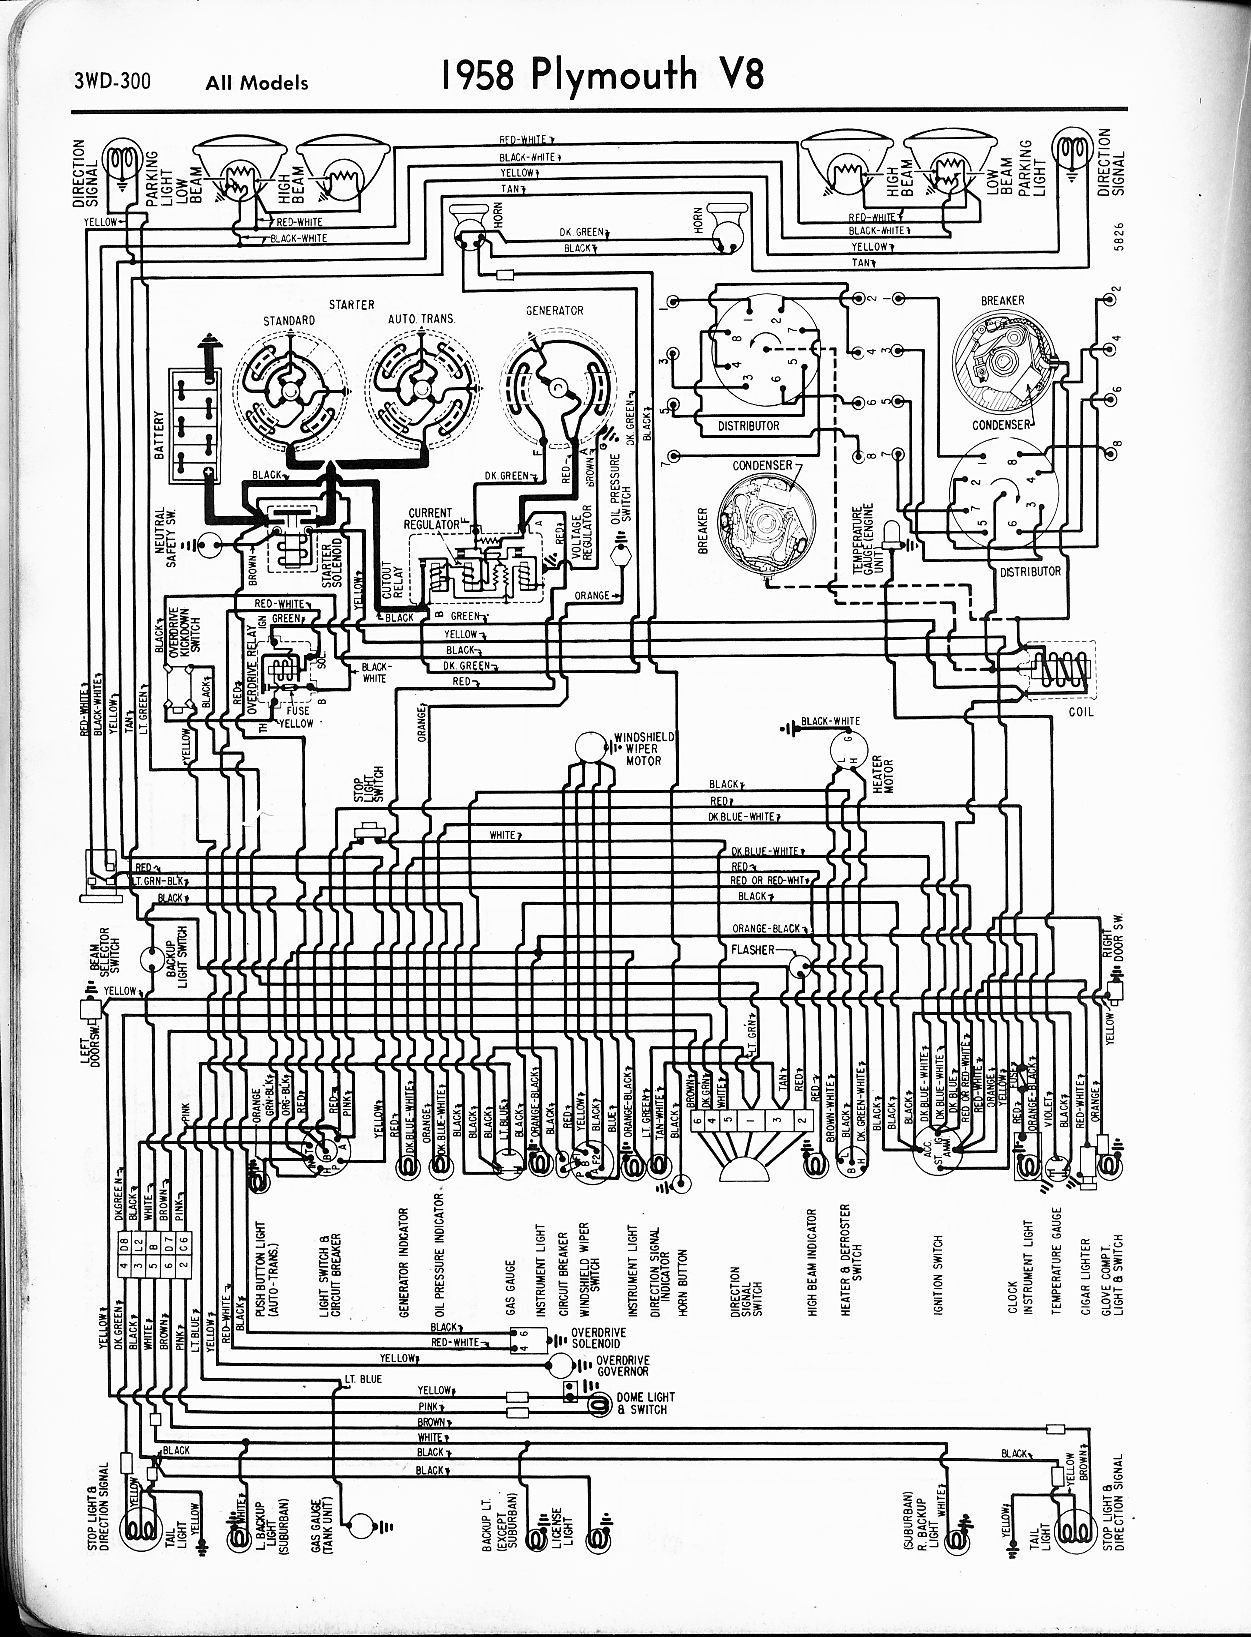 56 plymouth wiring diagram 1956 - 1965 plymouth wiring - the old car manual project